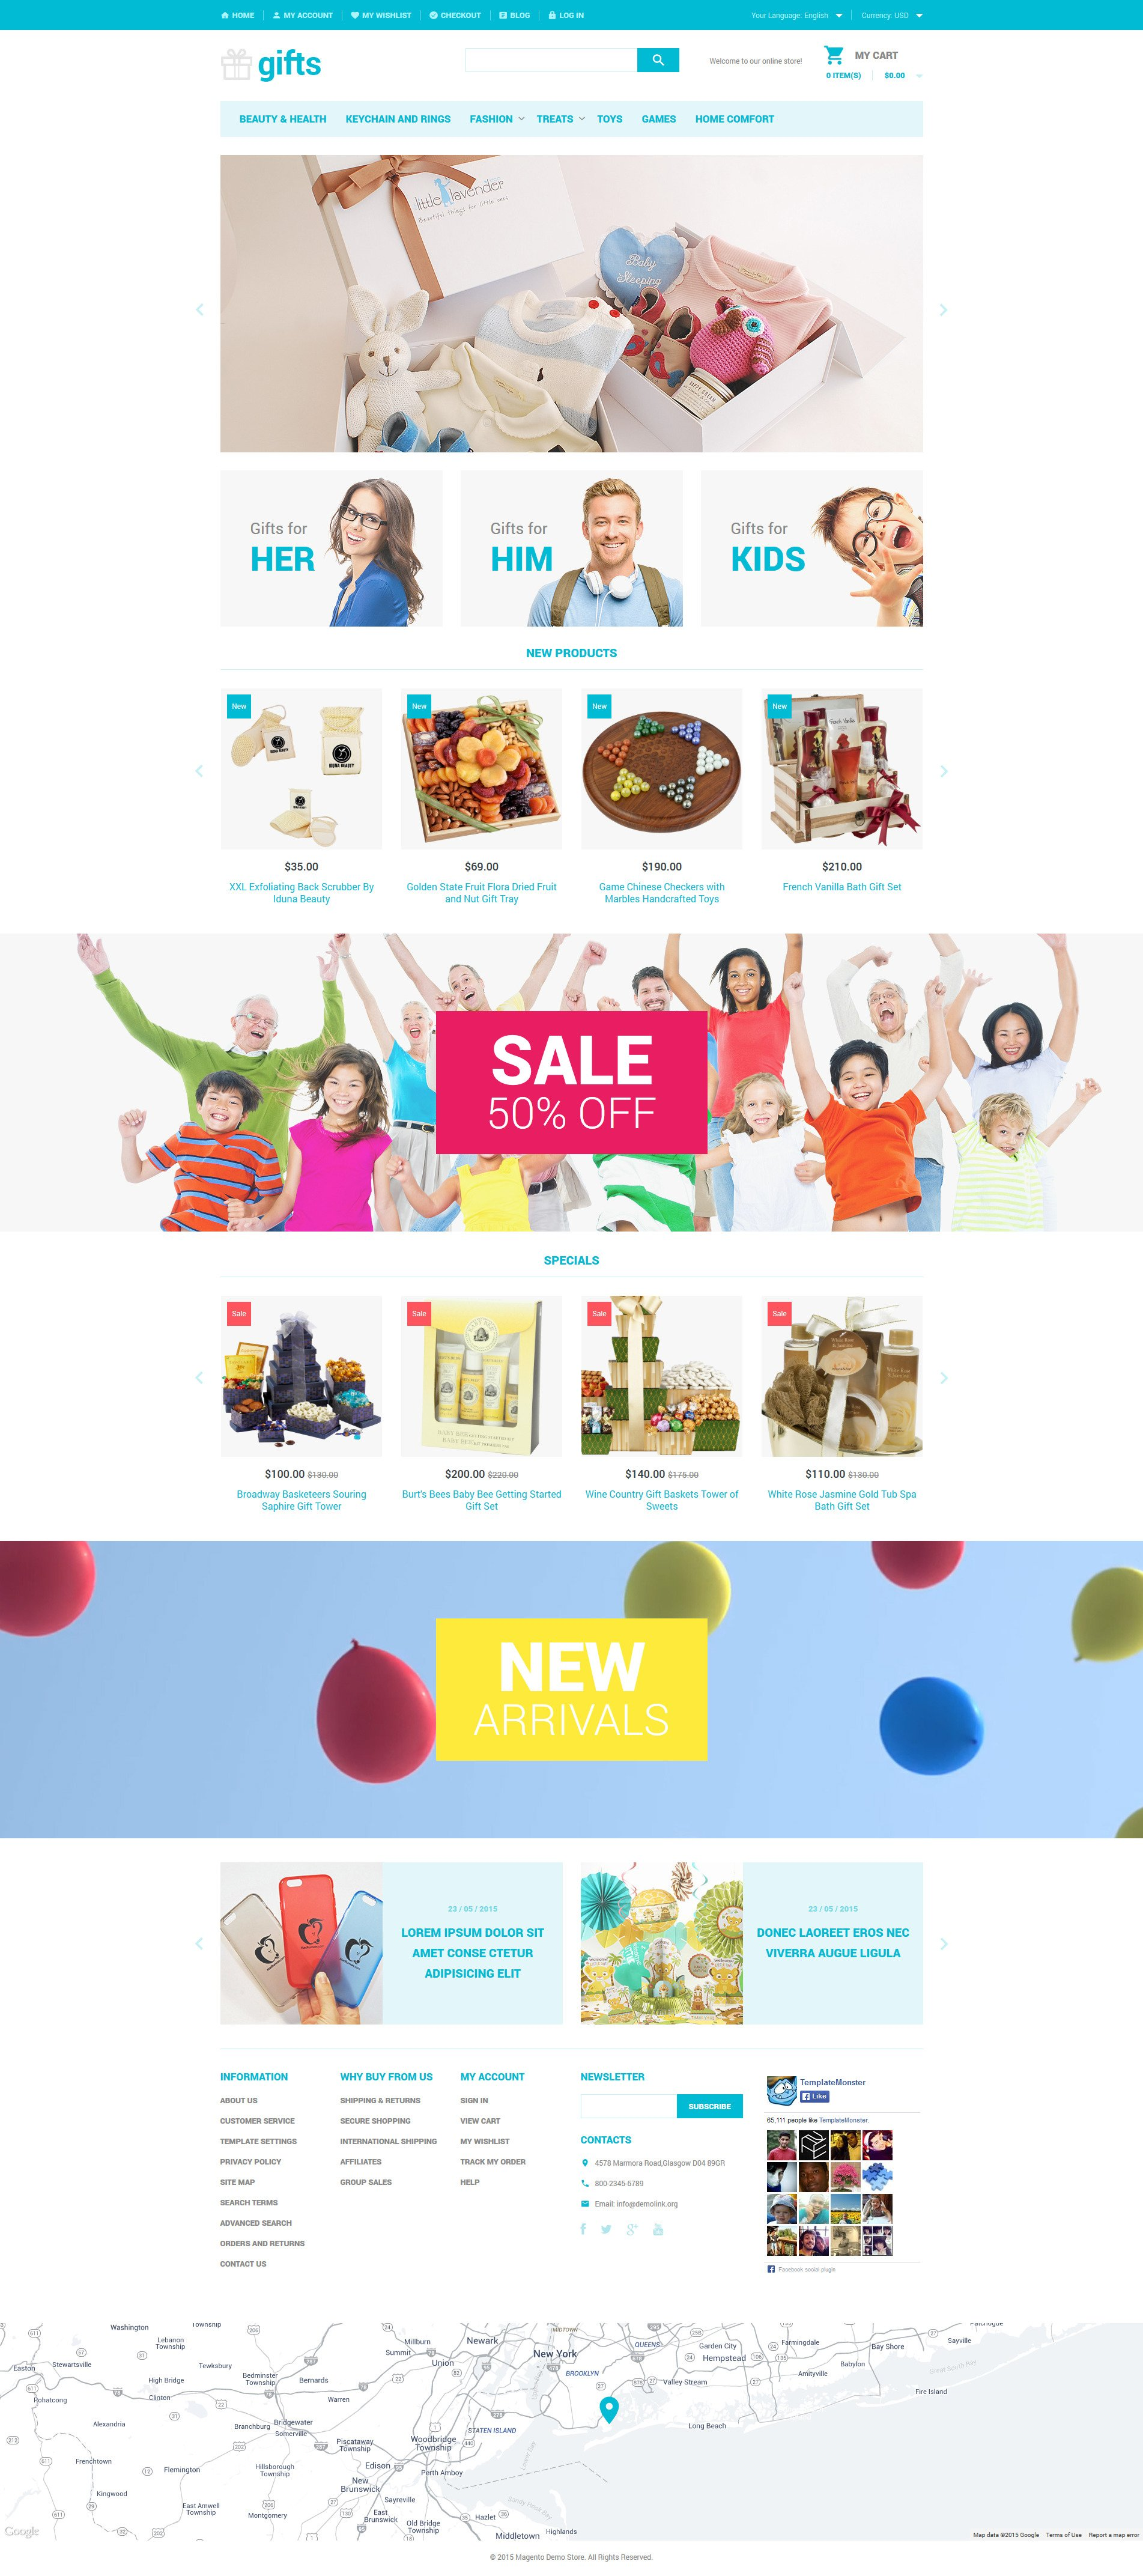 The Gift Store Magento Design 54054, one of the best Magento themes of its kind (gifts, most popular), also known as gift store Magento template, online presents Magento template, shop Magento template, toys Magento template, games Magento template, ties Magento template, snowmen Magento template, baskets Magento template, candle Magento template, accessory Magento template, books Magento template, media Magento template, frame Magento template, furniture Magento template, cards Magento template, clothes Magento template, socks Magento template, apparel Magento template, electronics Magento template, flowers Magento template, jewelry Magento template, watches Magento template, animals Magento template, frames Magento template, delivery Magento template, decoration Magento template, congratulation Magento template, joy Magento template, collection Magento template, fashion and related with gift store, online presents, shop, toys, games, ties, snowmen, baskets, candle, accessory, books, media, frame, furniture, cards, clothes, socks, apparel, electronics, flowers, jewelry, watches, animals, frames, delivery, decoration, congratulation, joy, collection, fashion, etc.